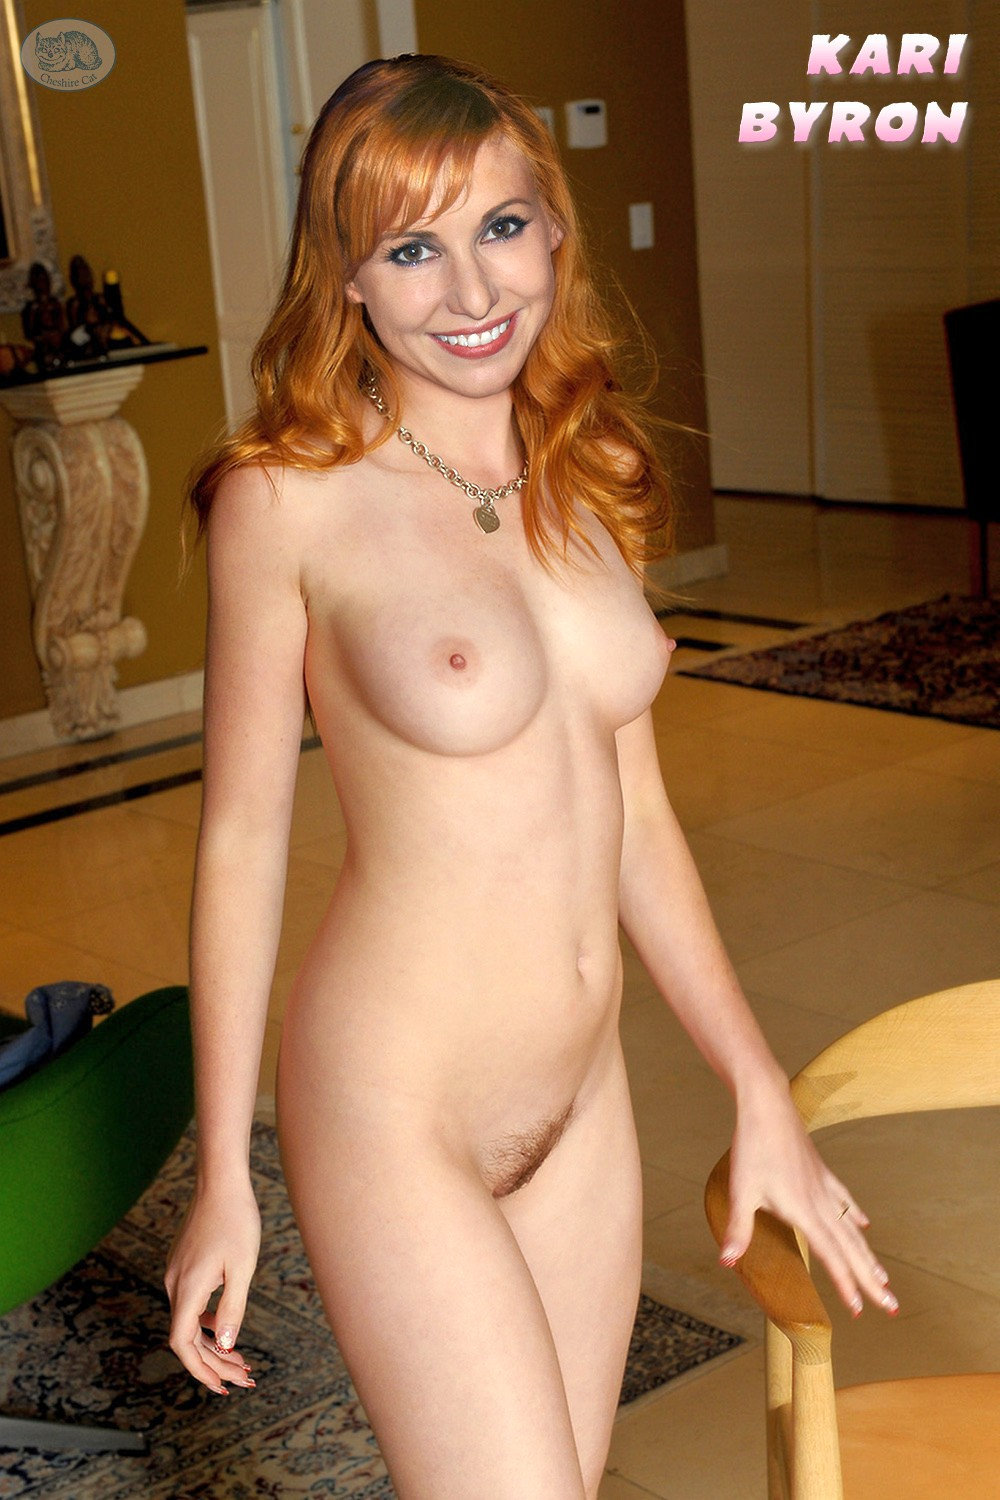 Kari Byron Nude Fakes - 011